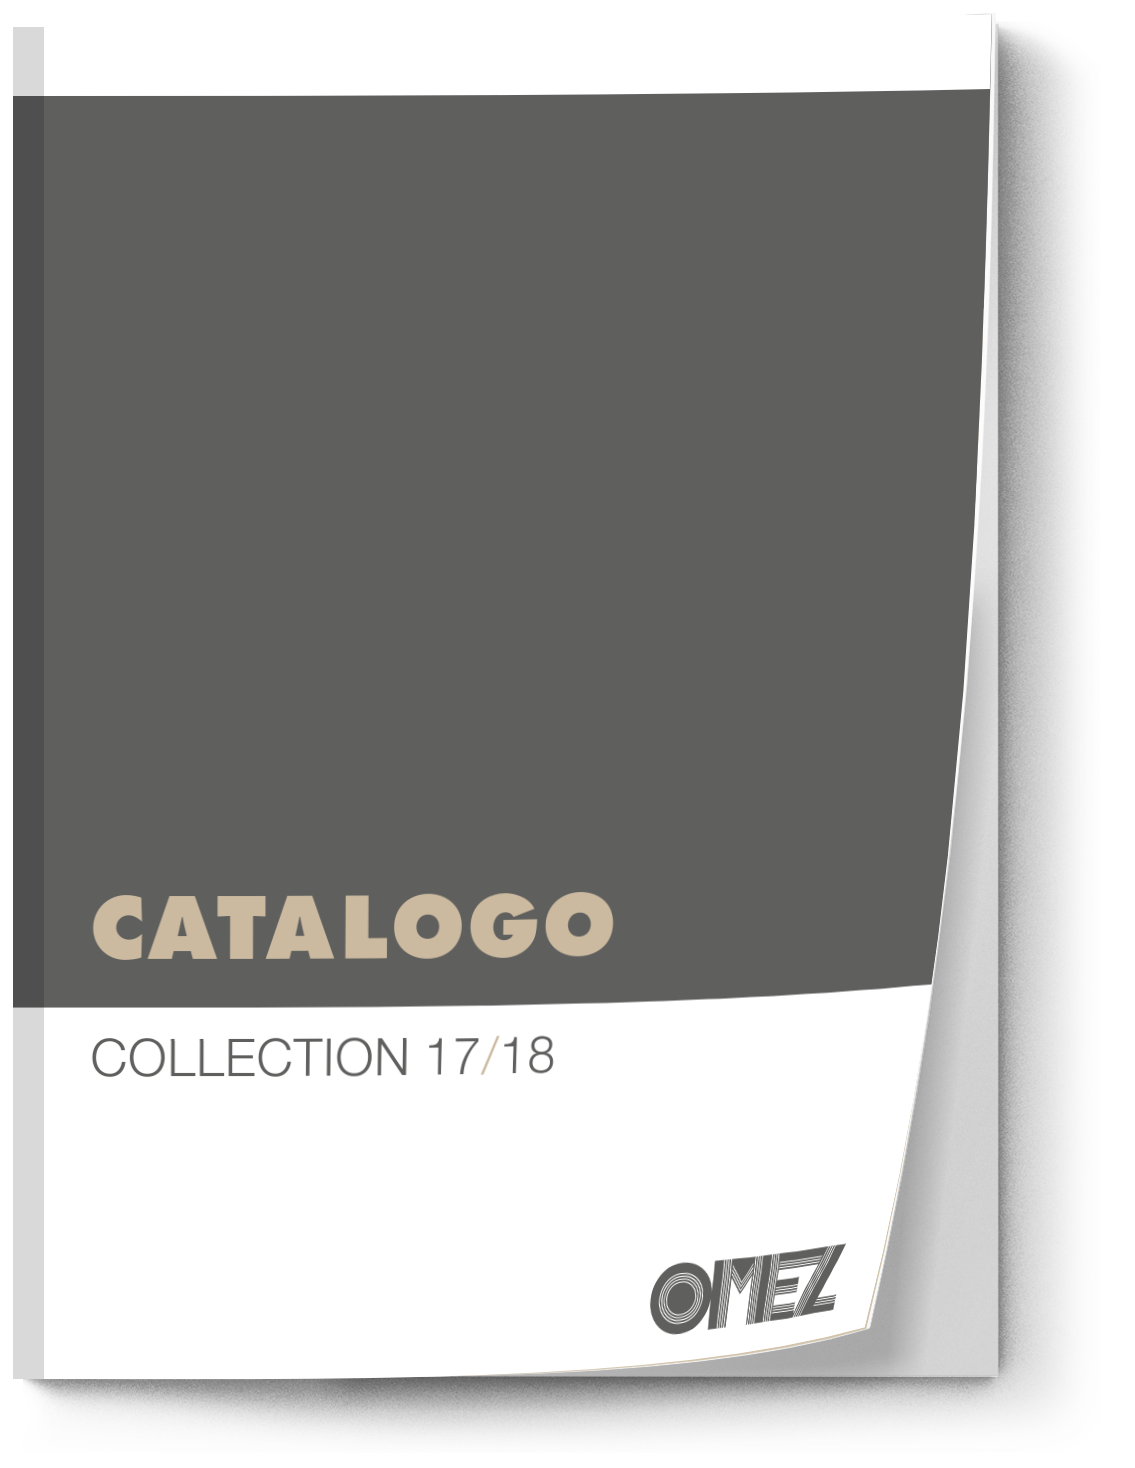 Catalogo Omez Collection 2017-18